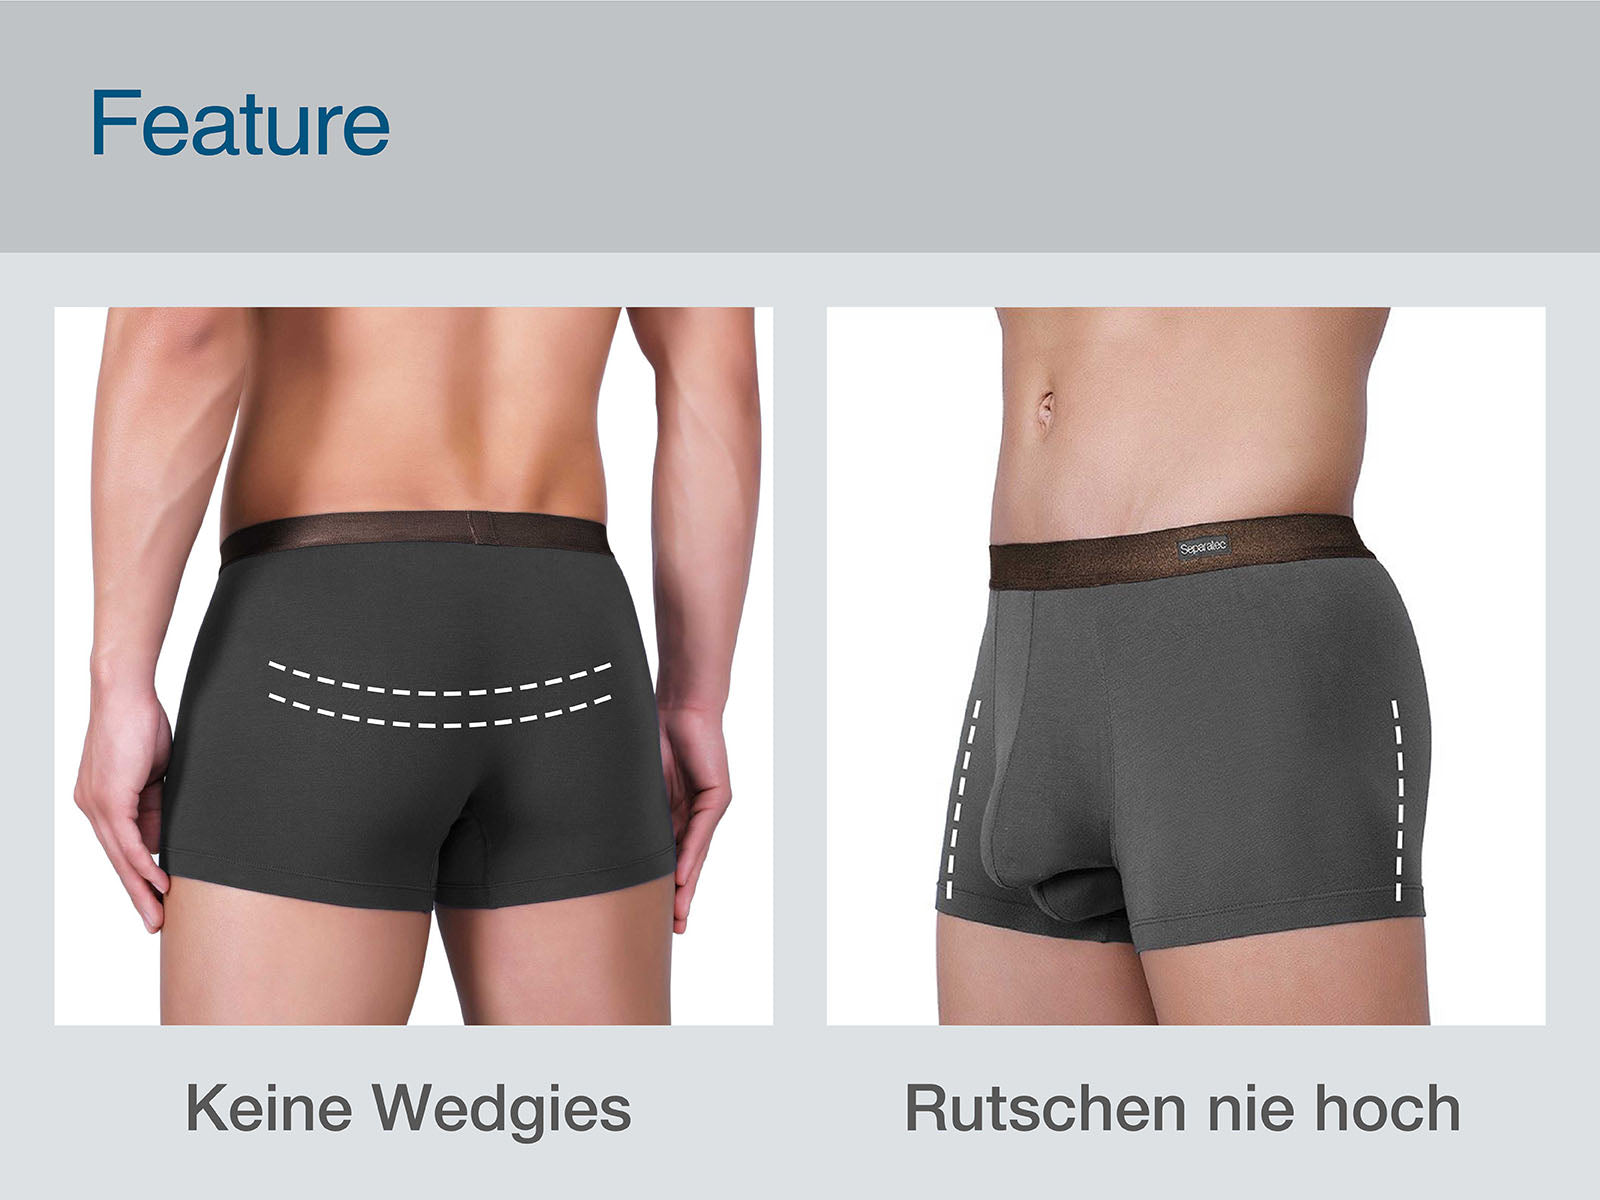 separatec dual pouch underwear feature